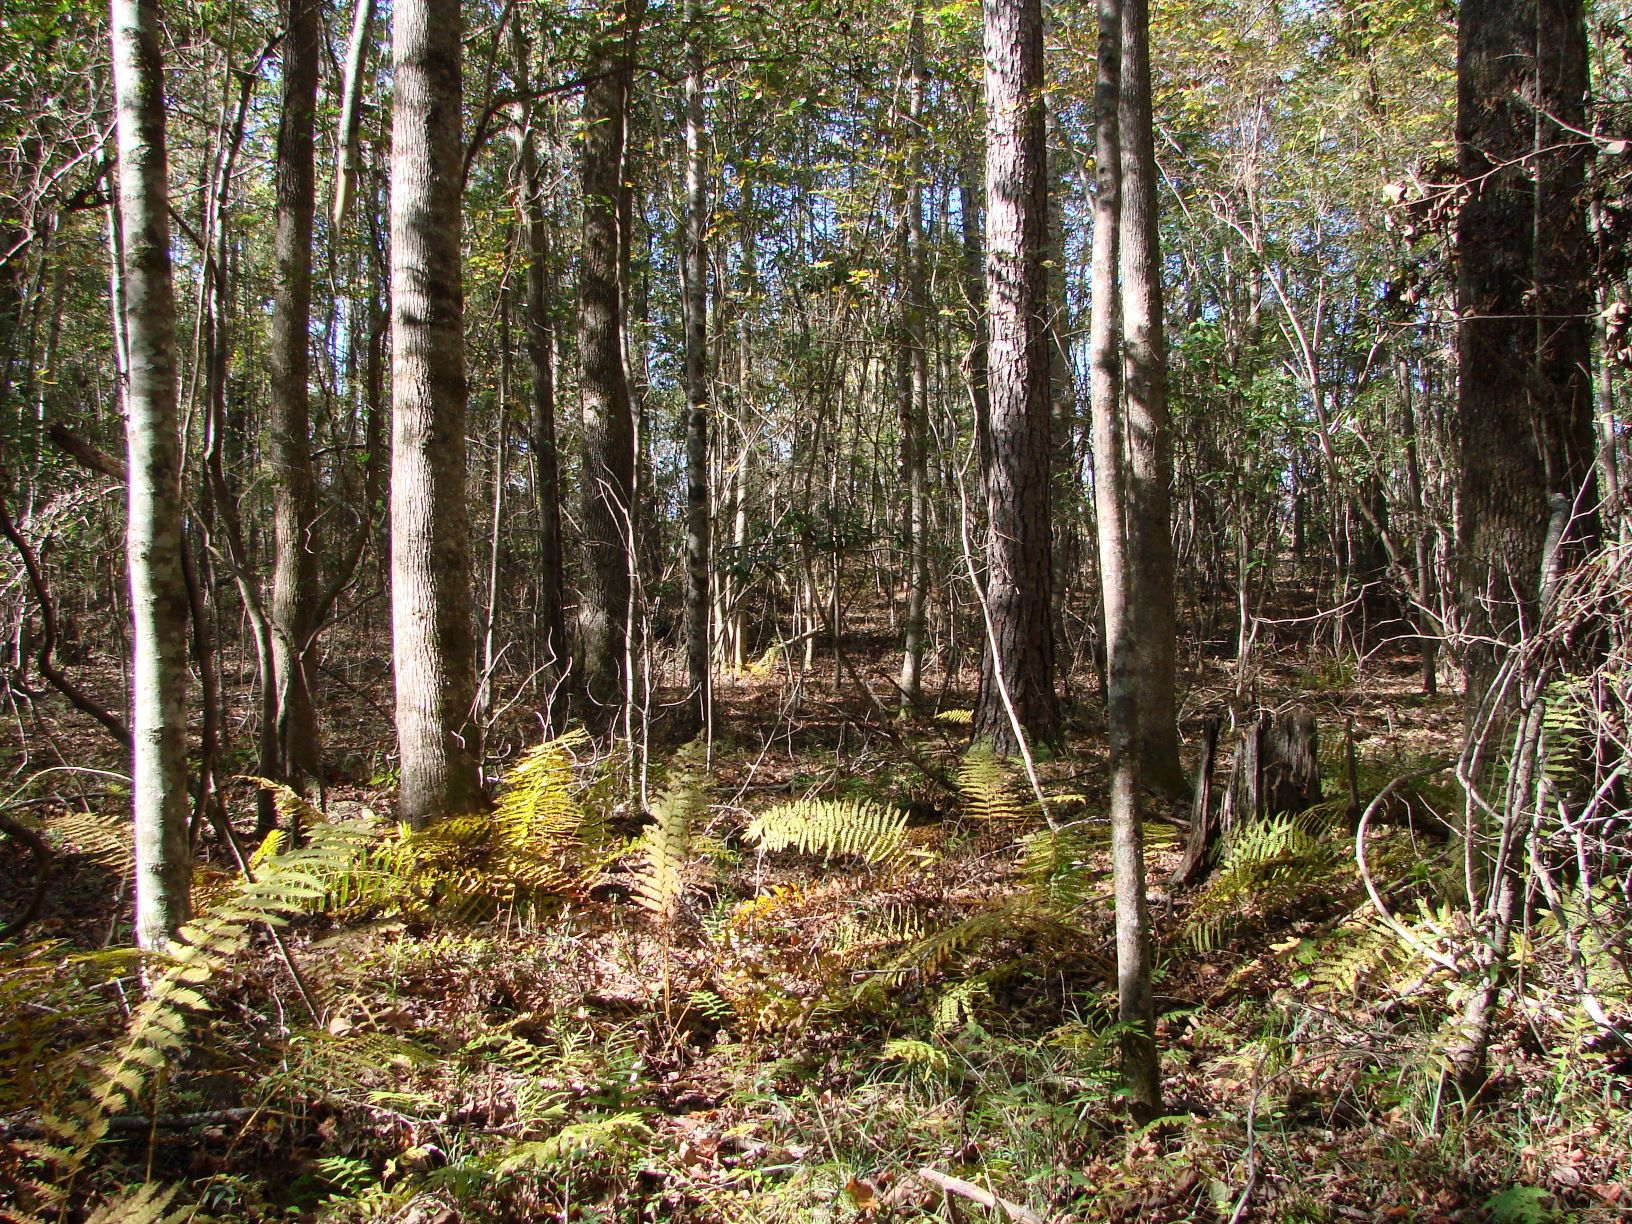 Some of the timber that is part of the 63 acres of mature timber